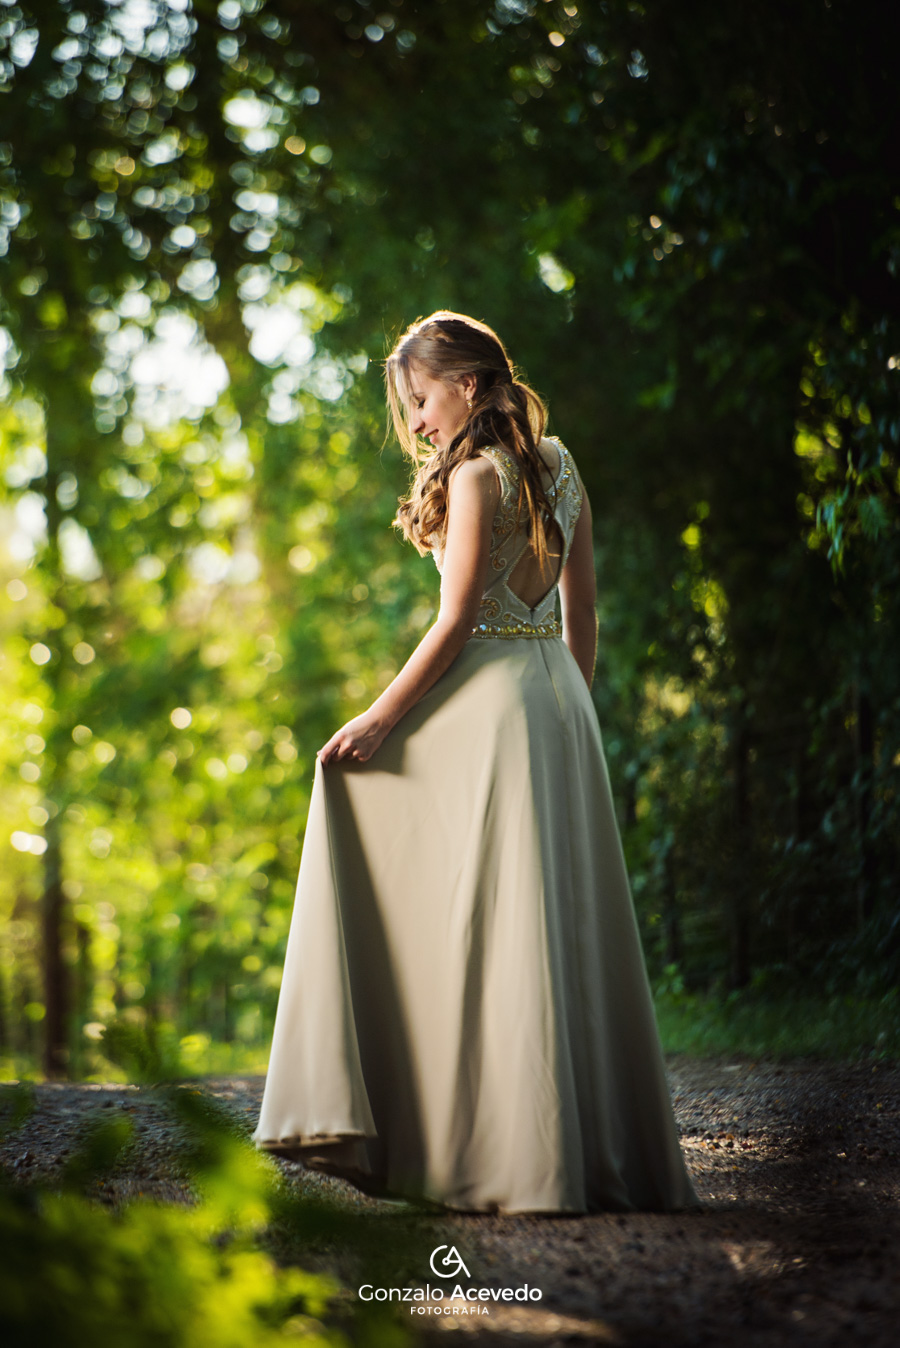 Pau book de 15 trash the dress fifteens vestido dia natural campo ideas geniales originales #gonzaloacevedofotografia gonzalo acevedo